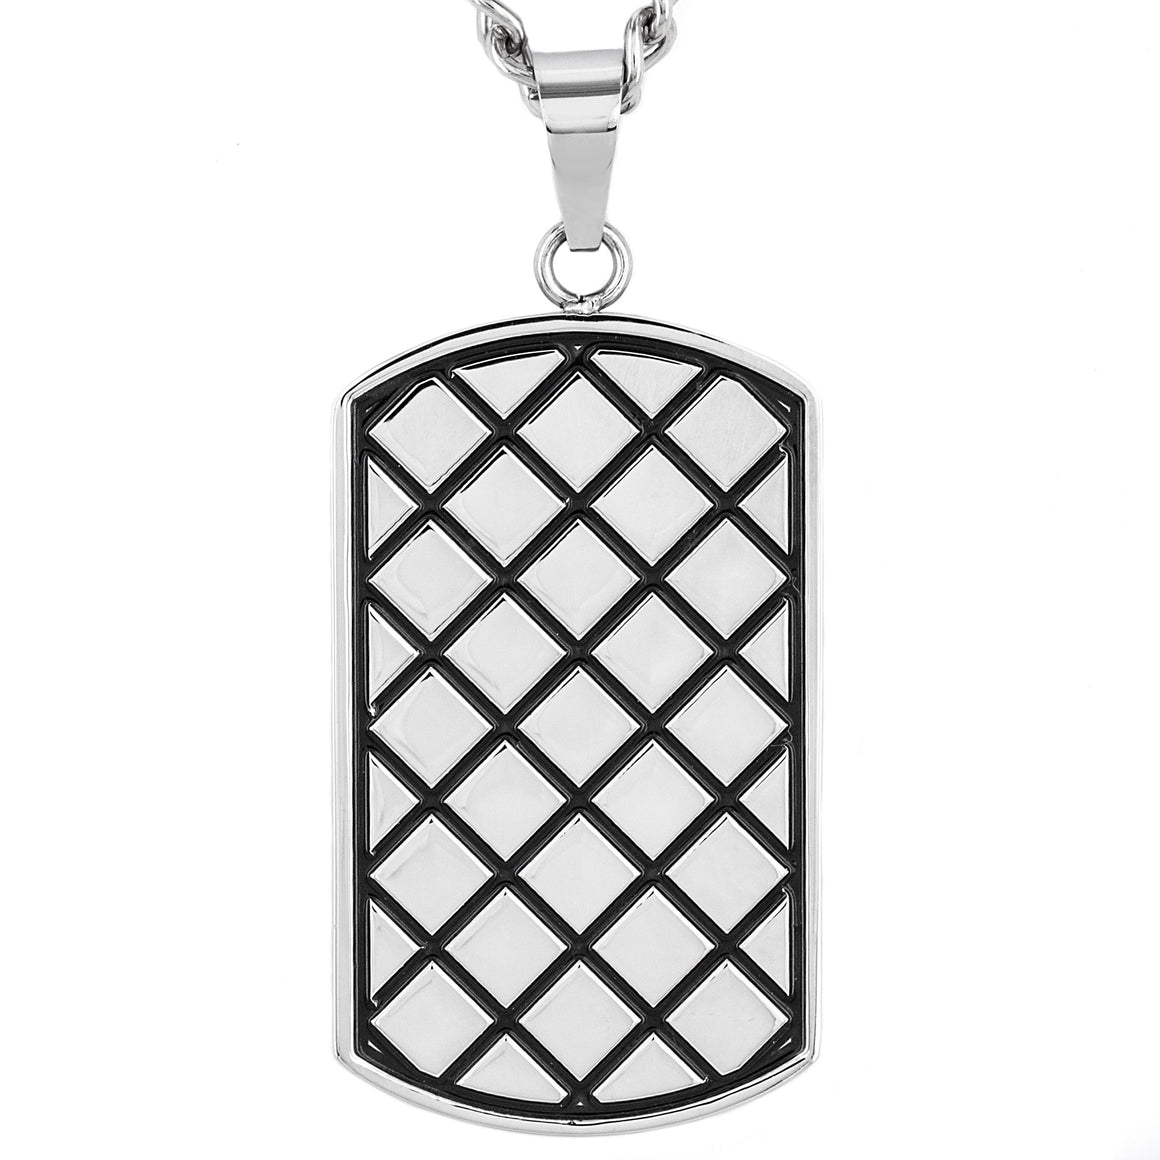 Crucible Stainless Steel Diamond Pattern Textured Dog Tag Pendant Necklace - 24""